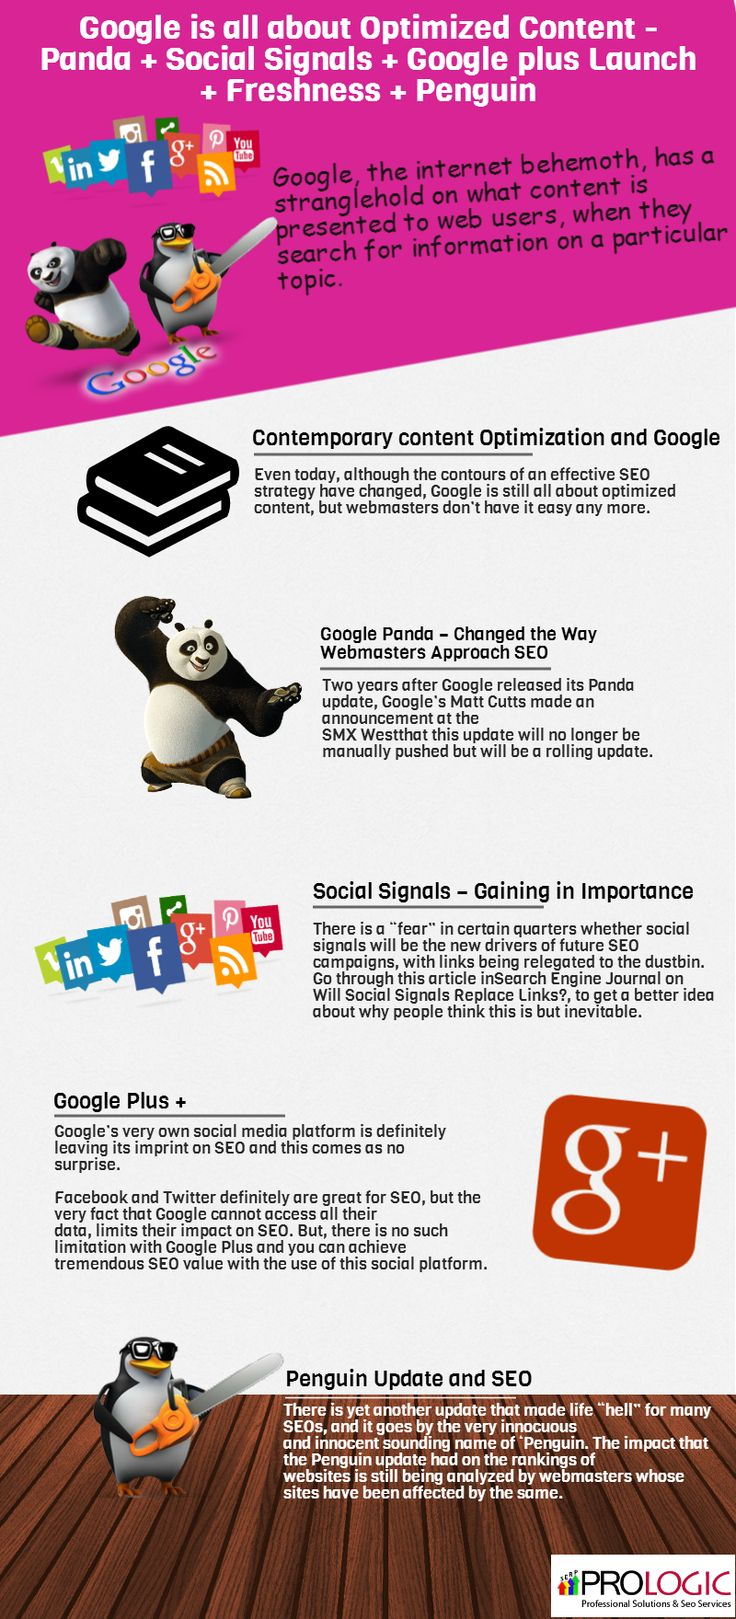 Google is all about Optimized Content – Panda + Social Signals + Google plus Launch + Freshness + Penguin